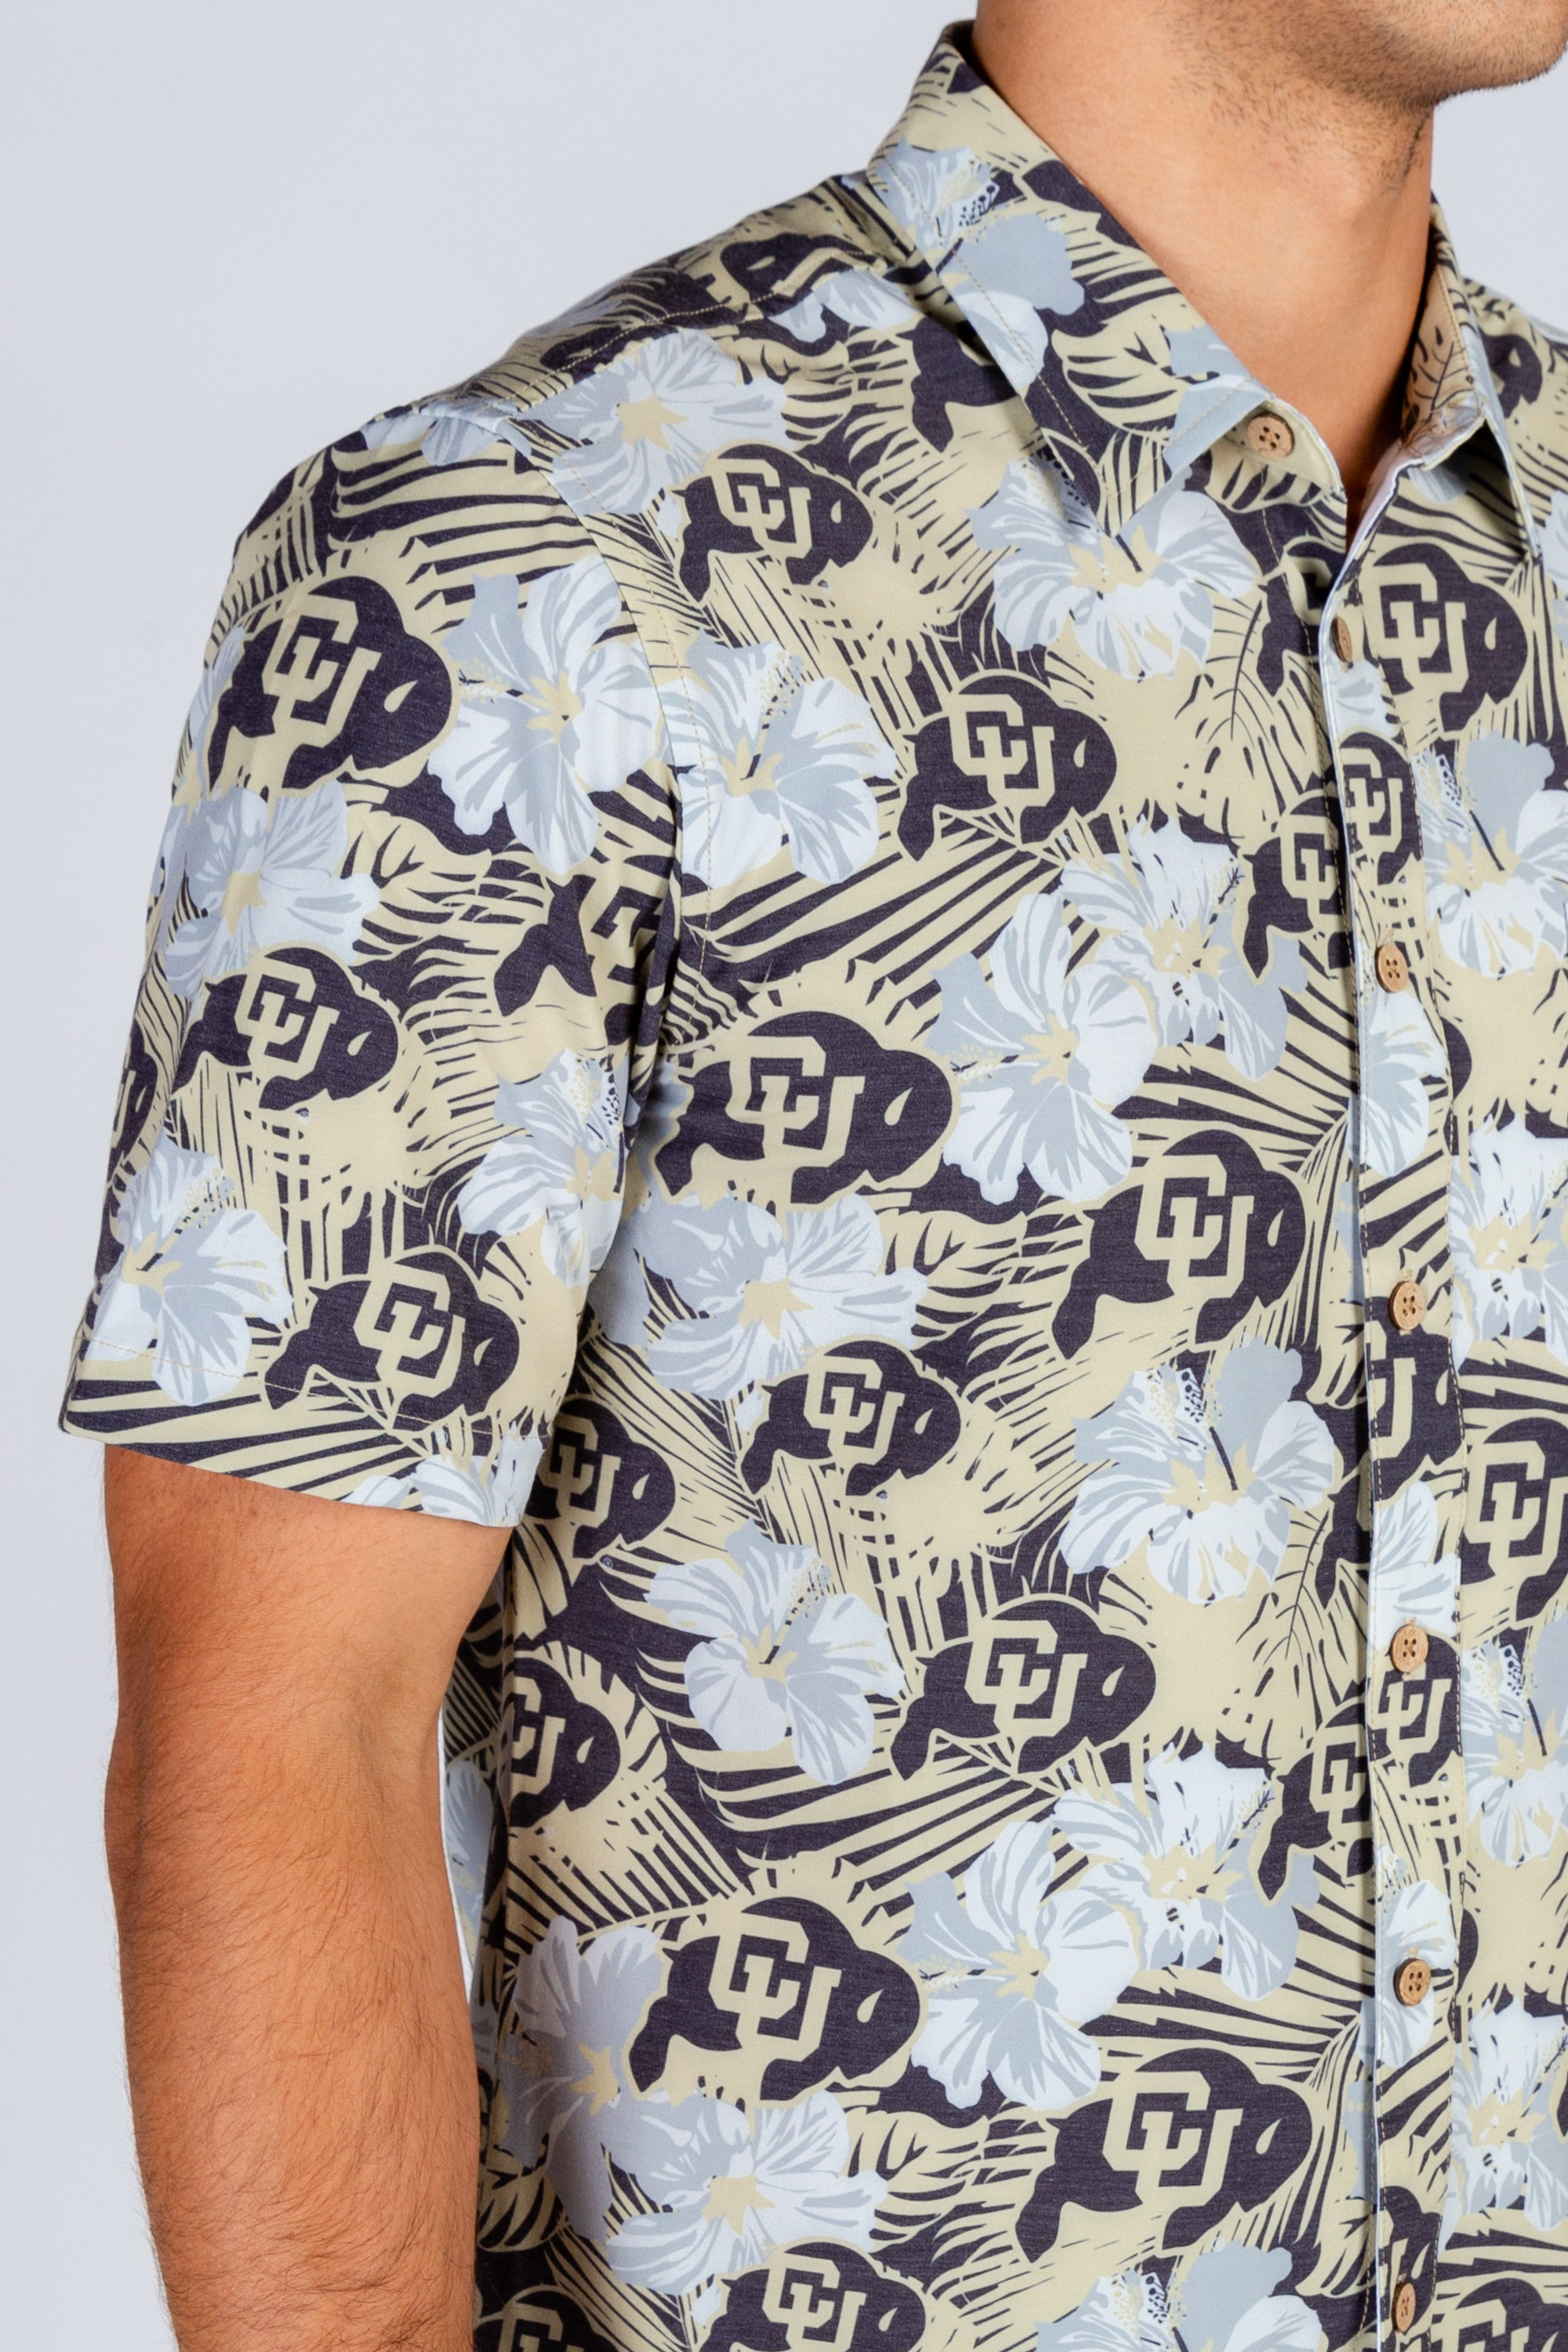 University of Colorado Button Up Hawaiian